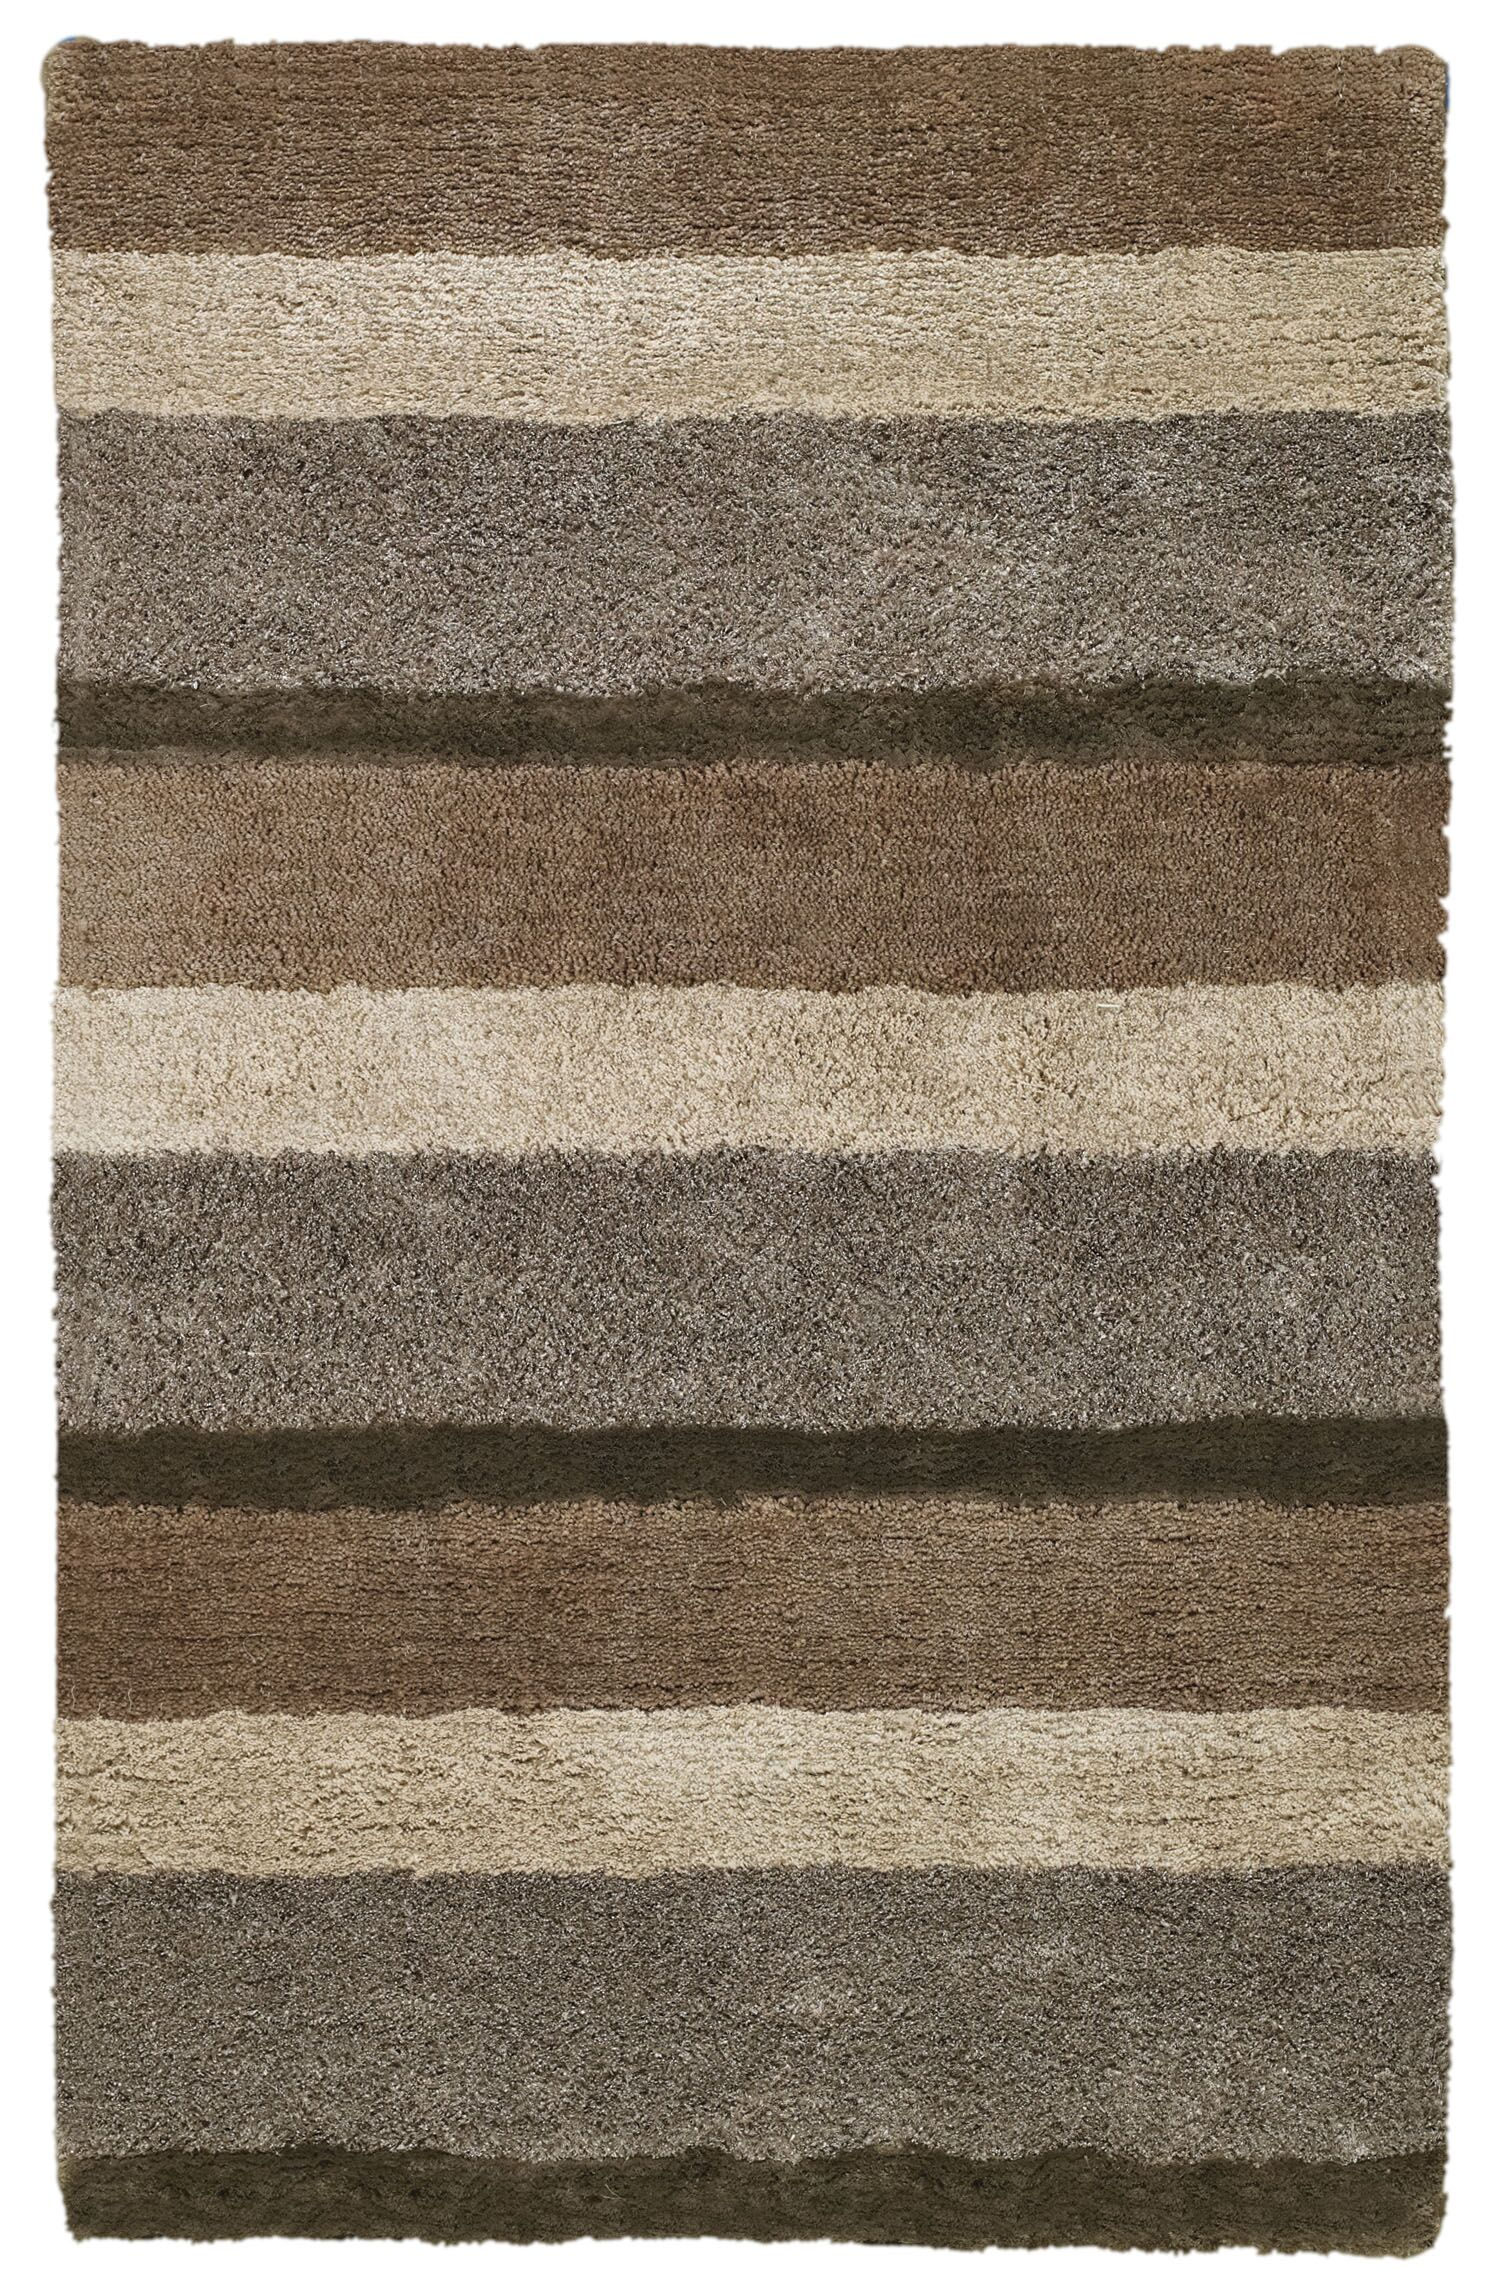 Contemporary Rug Size: Rectangle 5' x 8'